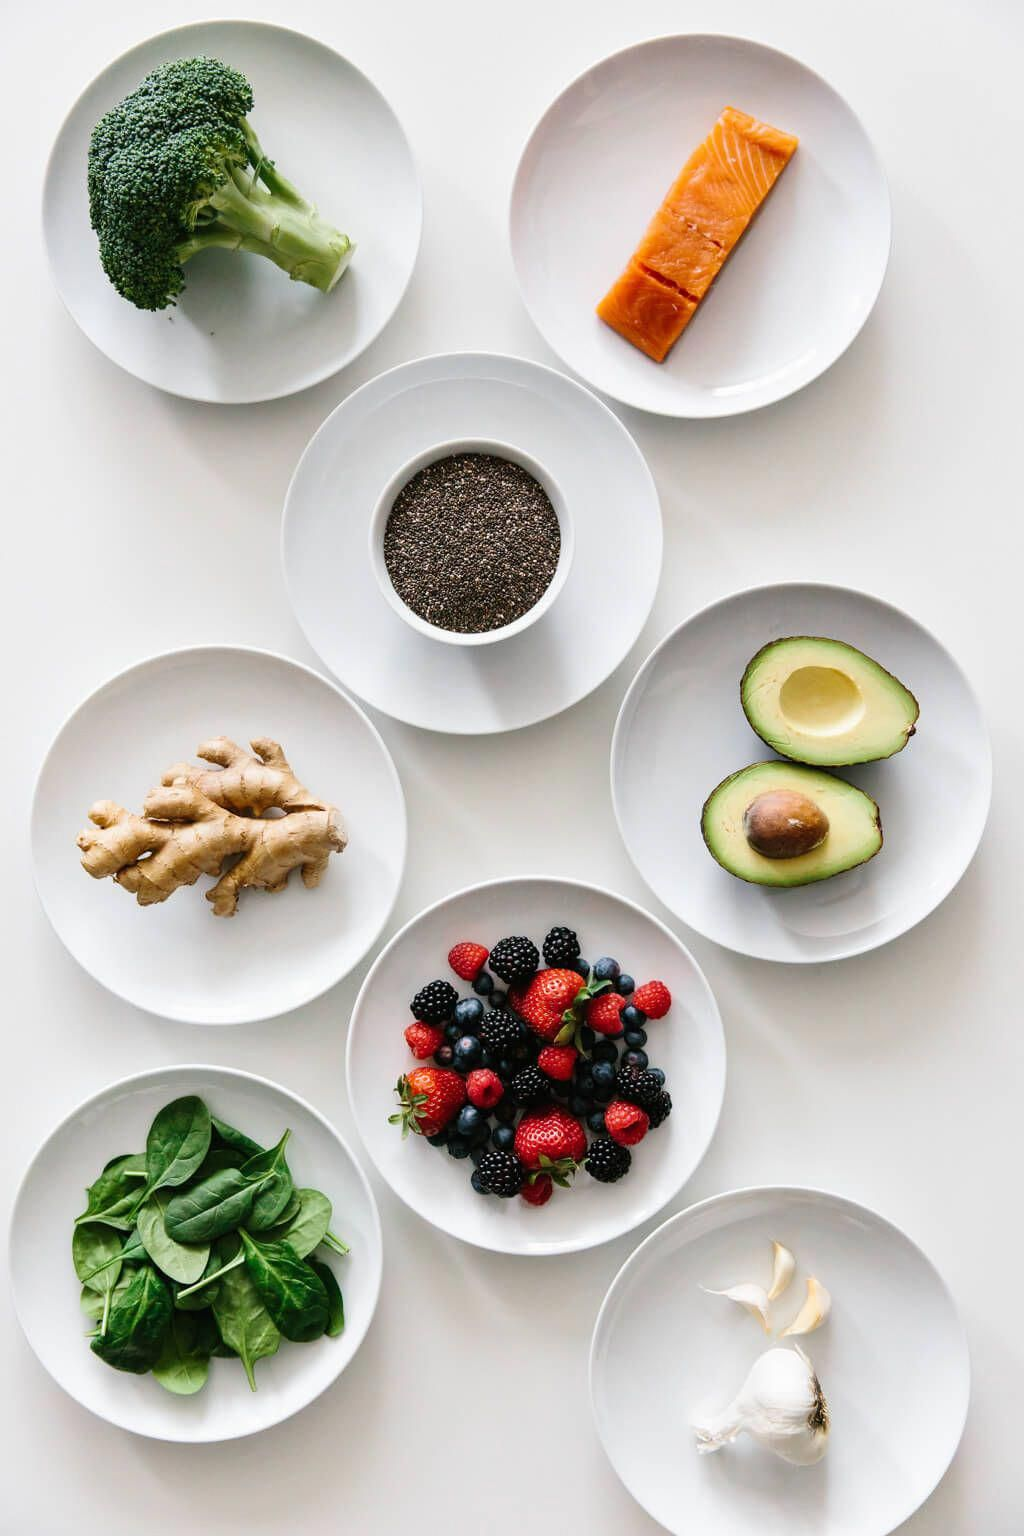 Antiinflammatory foods are those that have been well